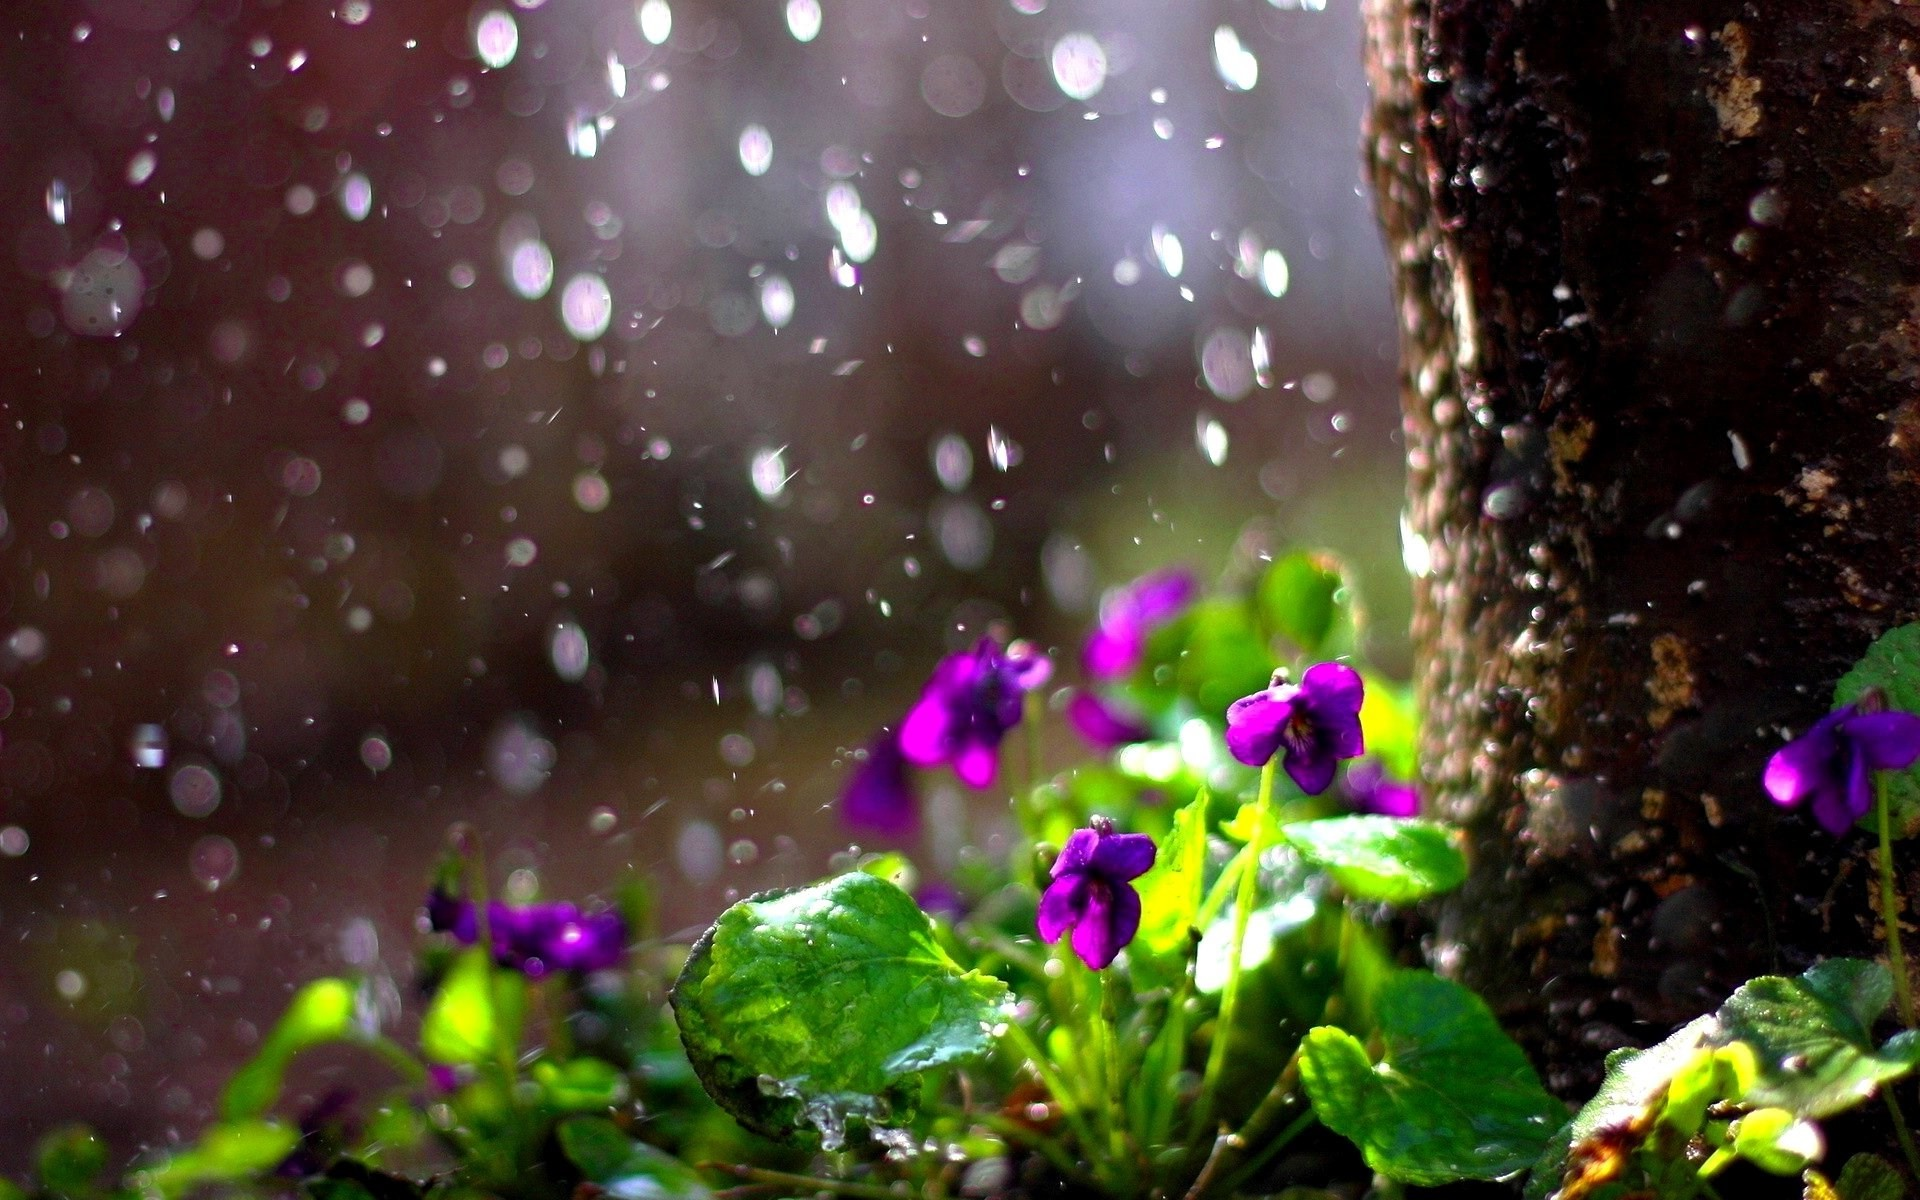 1920x1200 Spring Rain Wallpapers Background for HD Wallpaper Desktop px KB